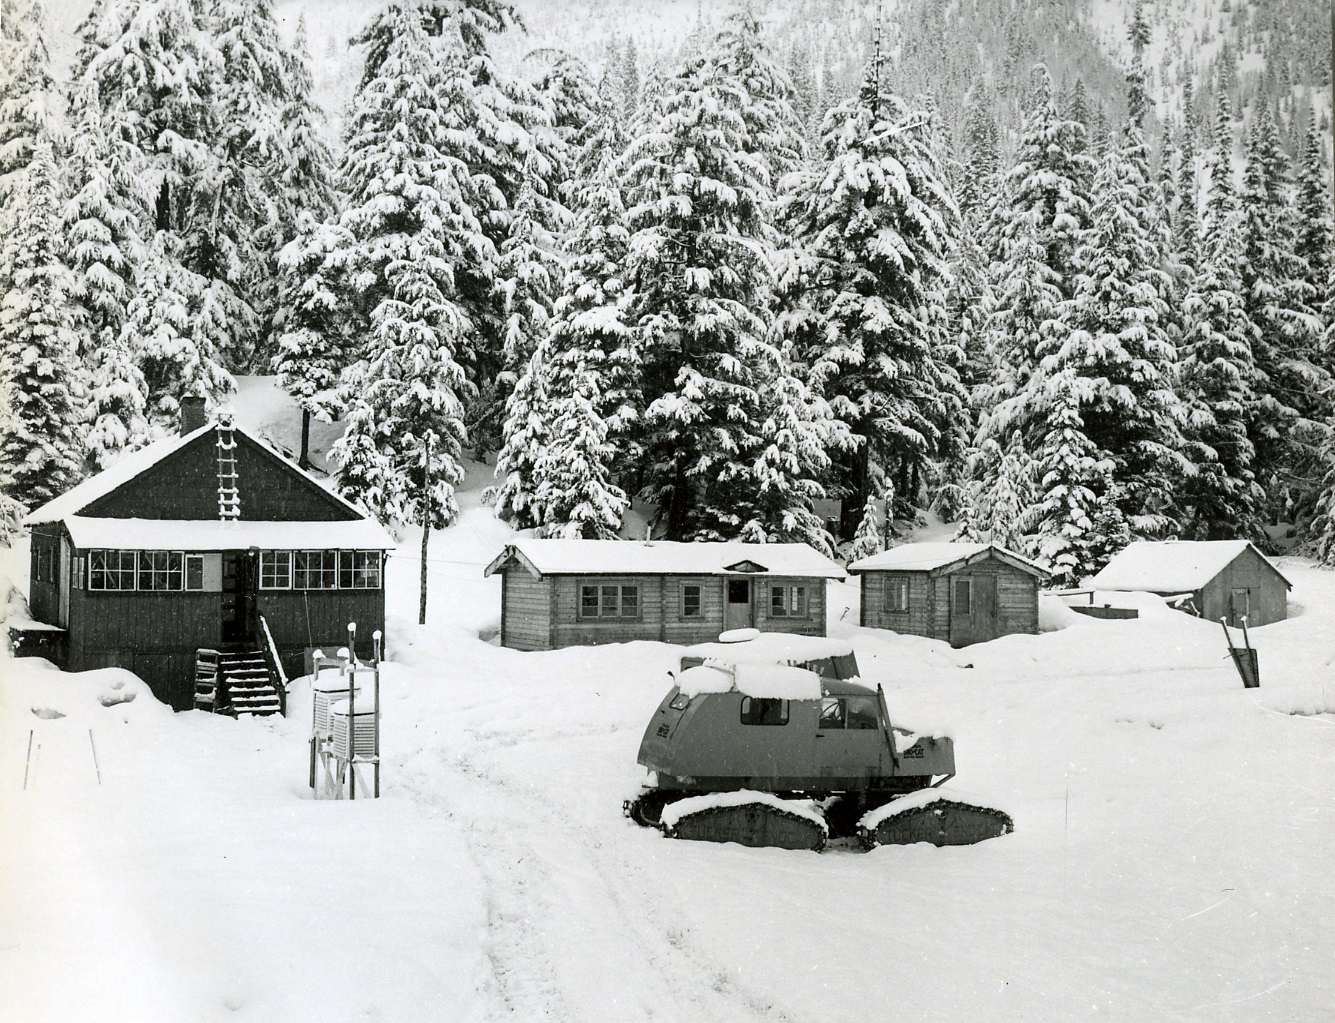 PSA.7 Engineering Camp of public works at Glacier. Quarters of avalanche survey crew. Jan. 1958.jpg